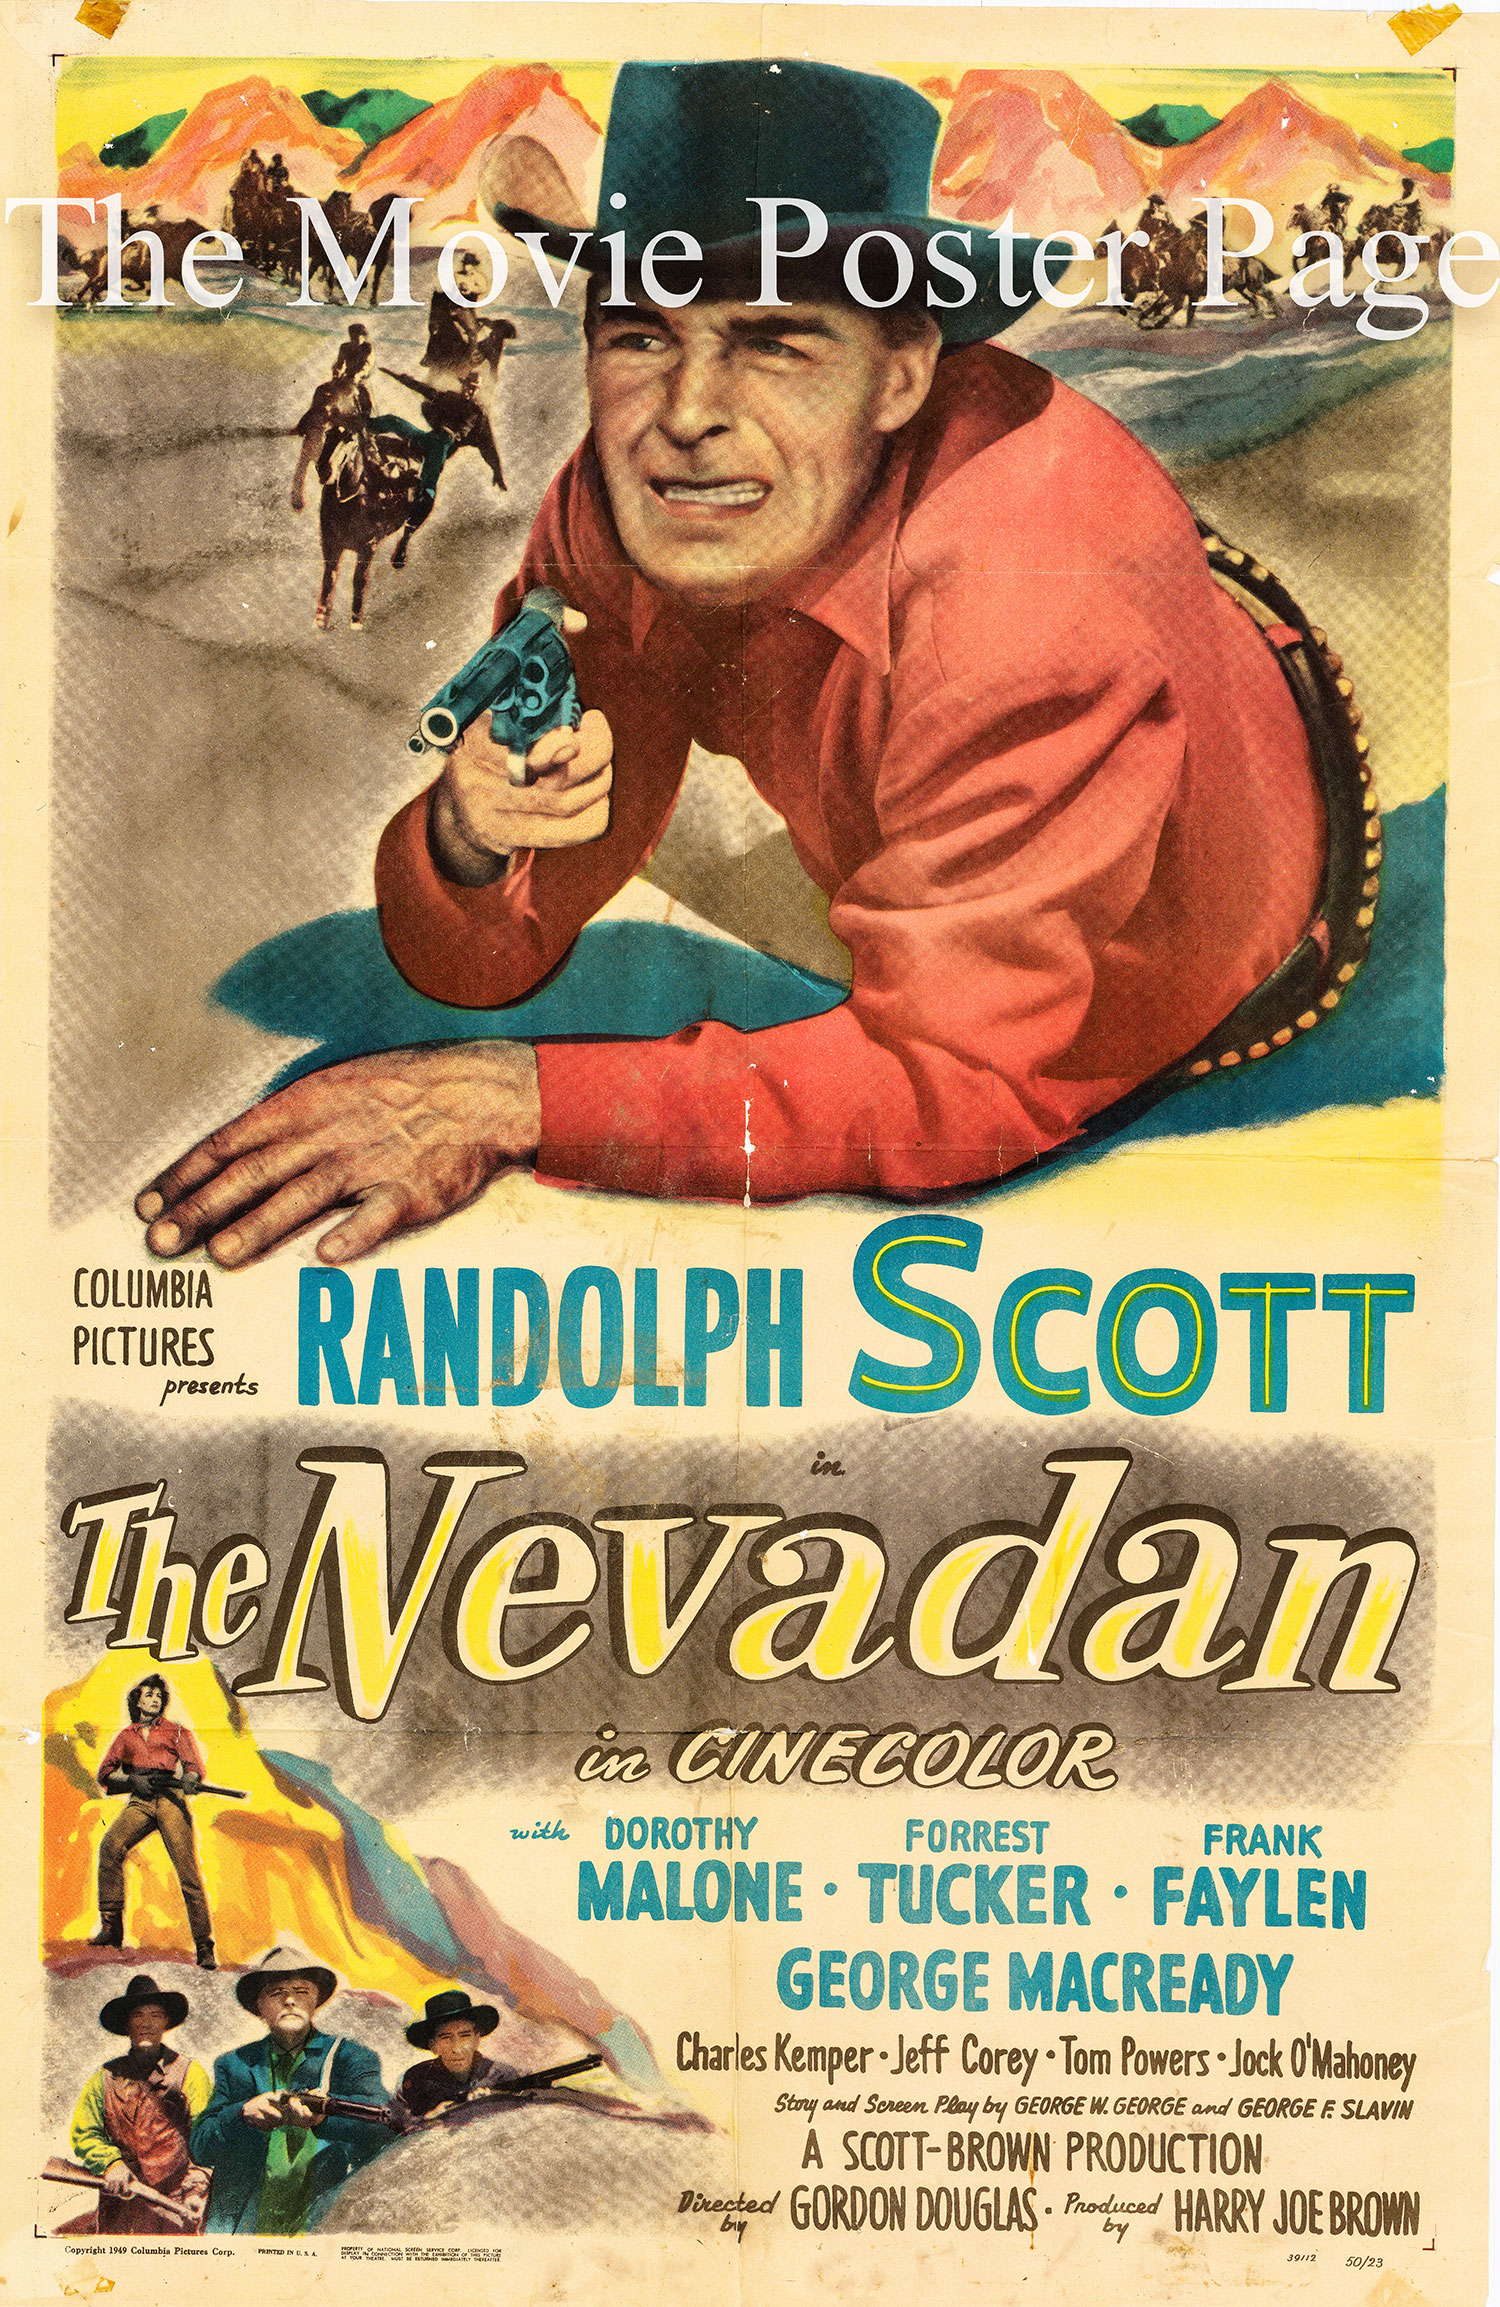 Pictured is a US one-sheet promotional poster for the 1950 Gordon Douglas film The Nevadan starring Randolph Scott.